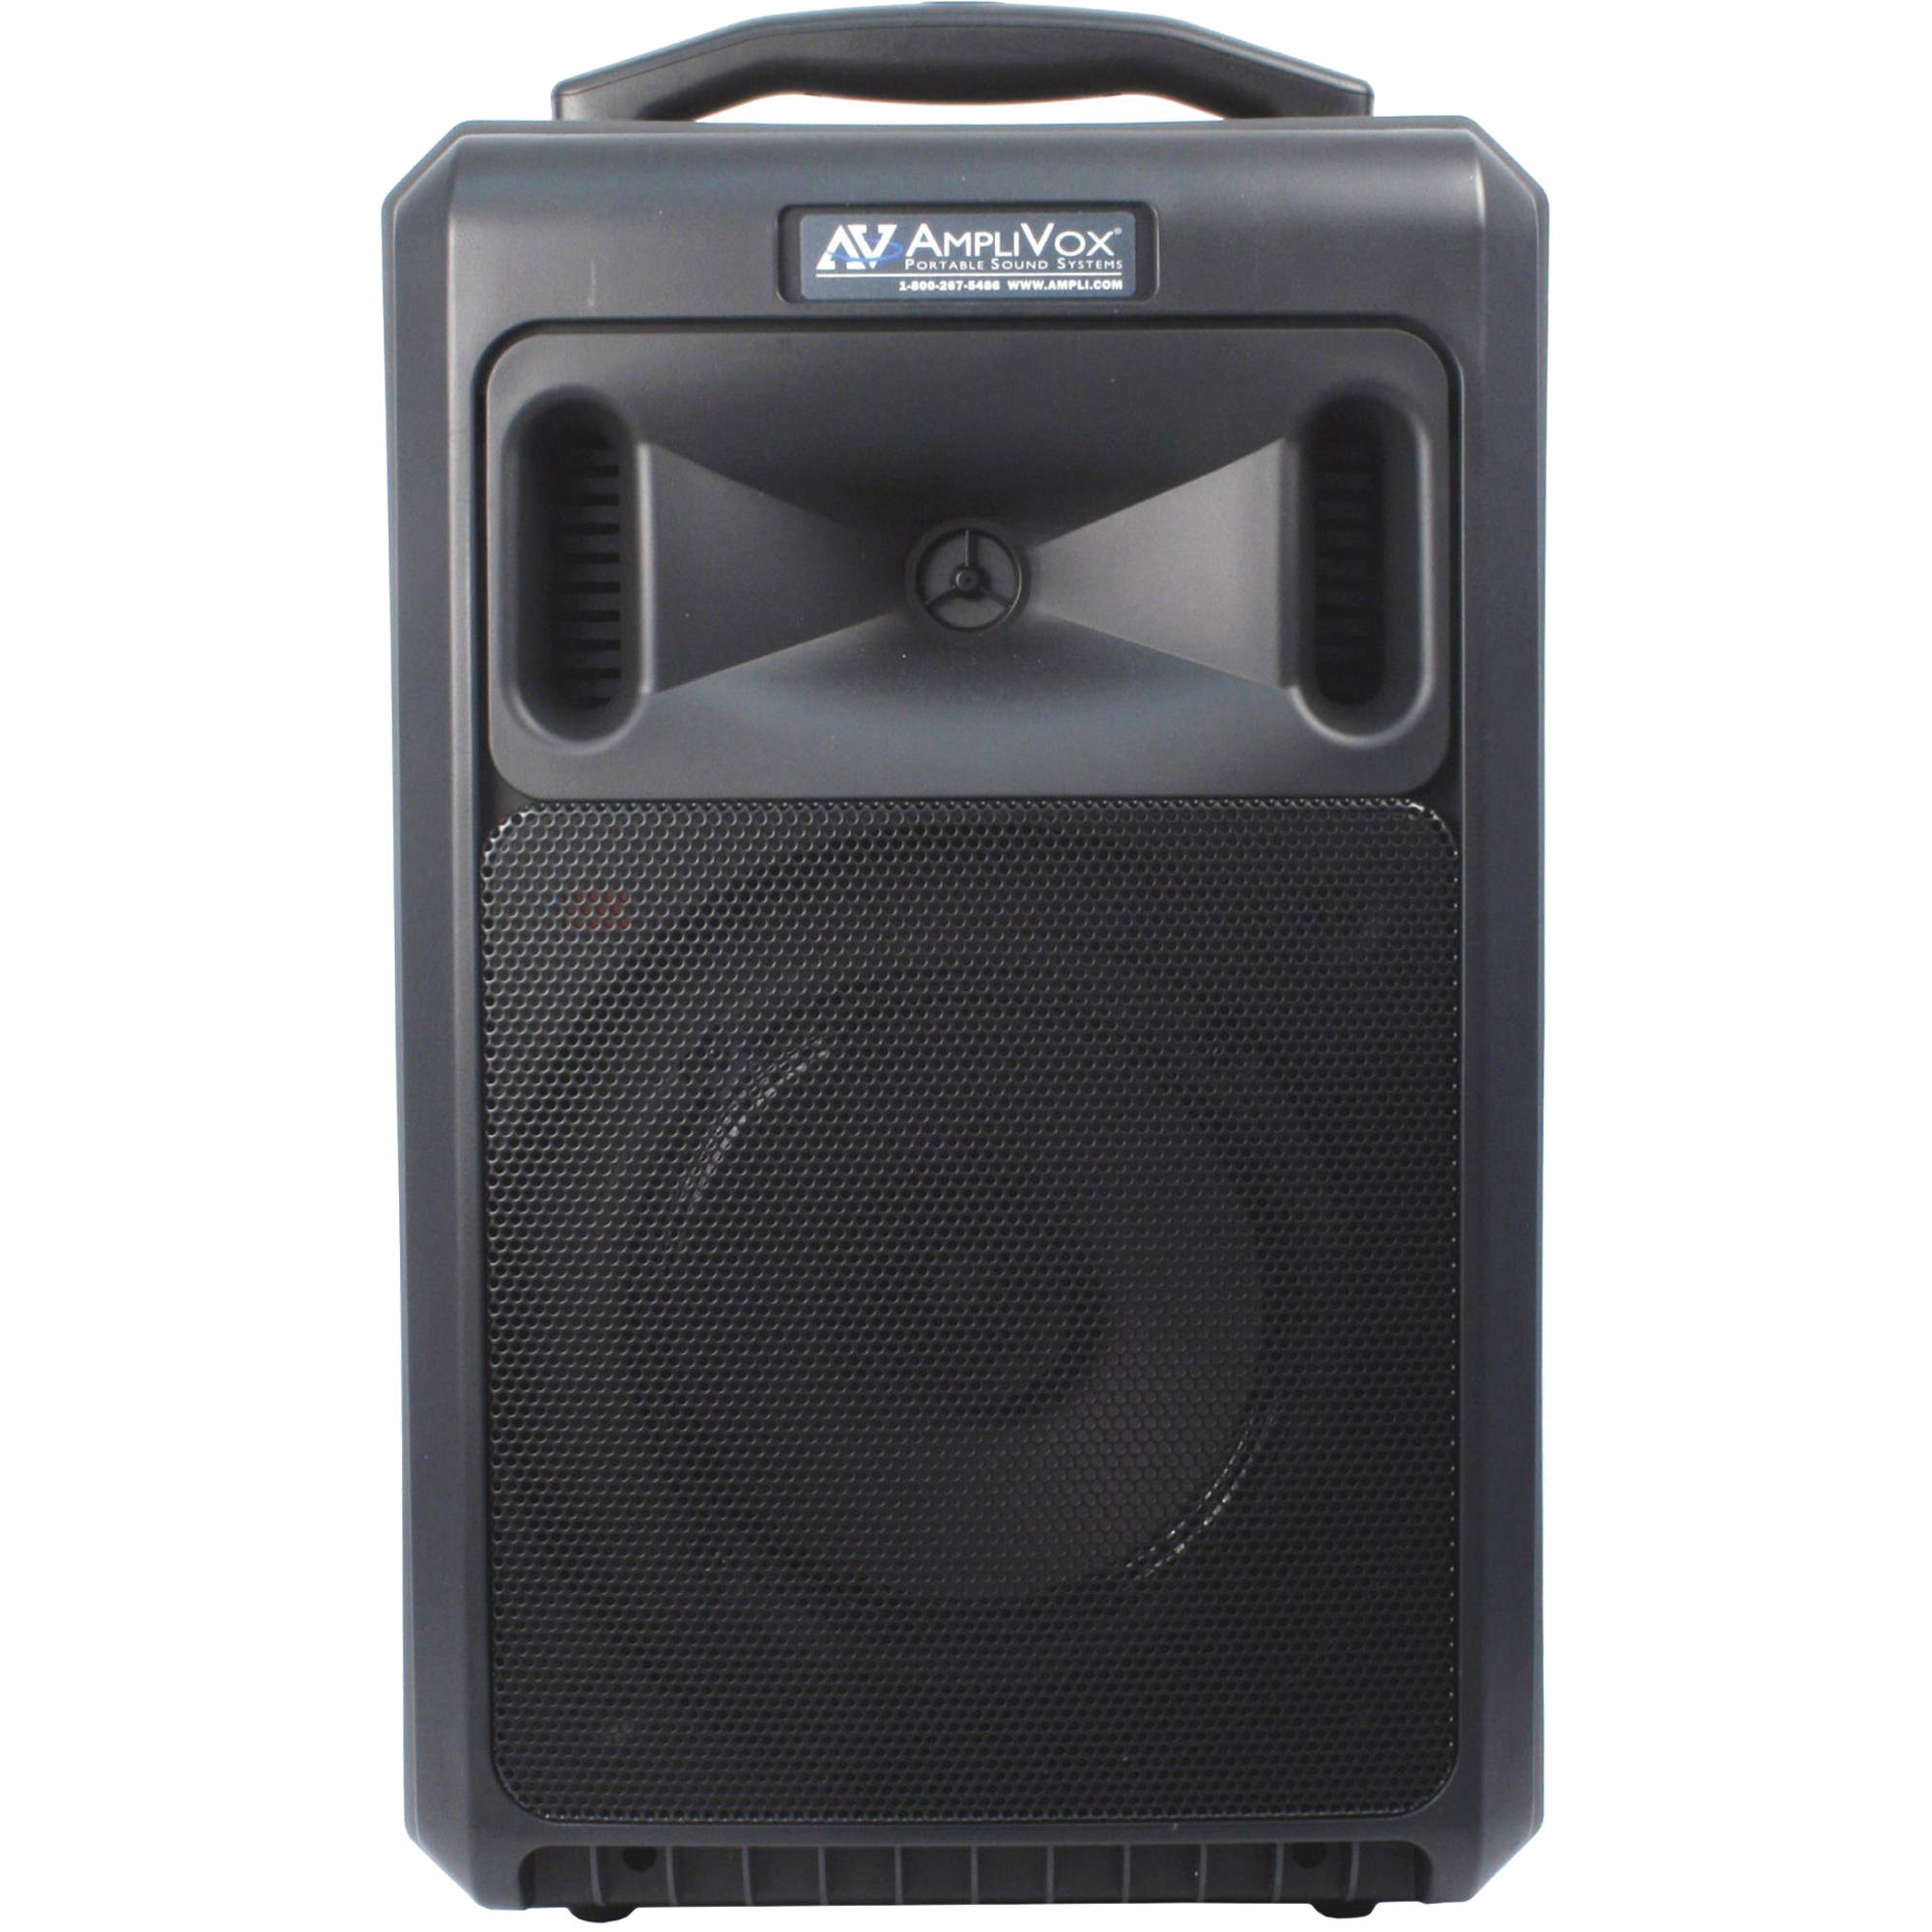 Portable Pa System With Wireless Speakers Wire Center Hi Fi Tone Control Circuit C1815 8211 C945 Amplivox Sound Systems Sw800l Titan Rh Bhphotovideo Com Speaker Presentation